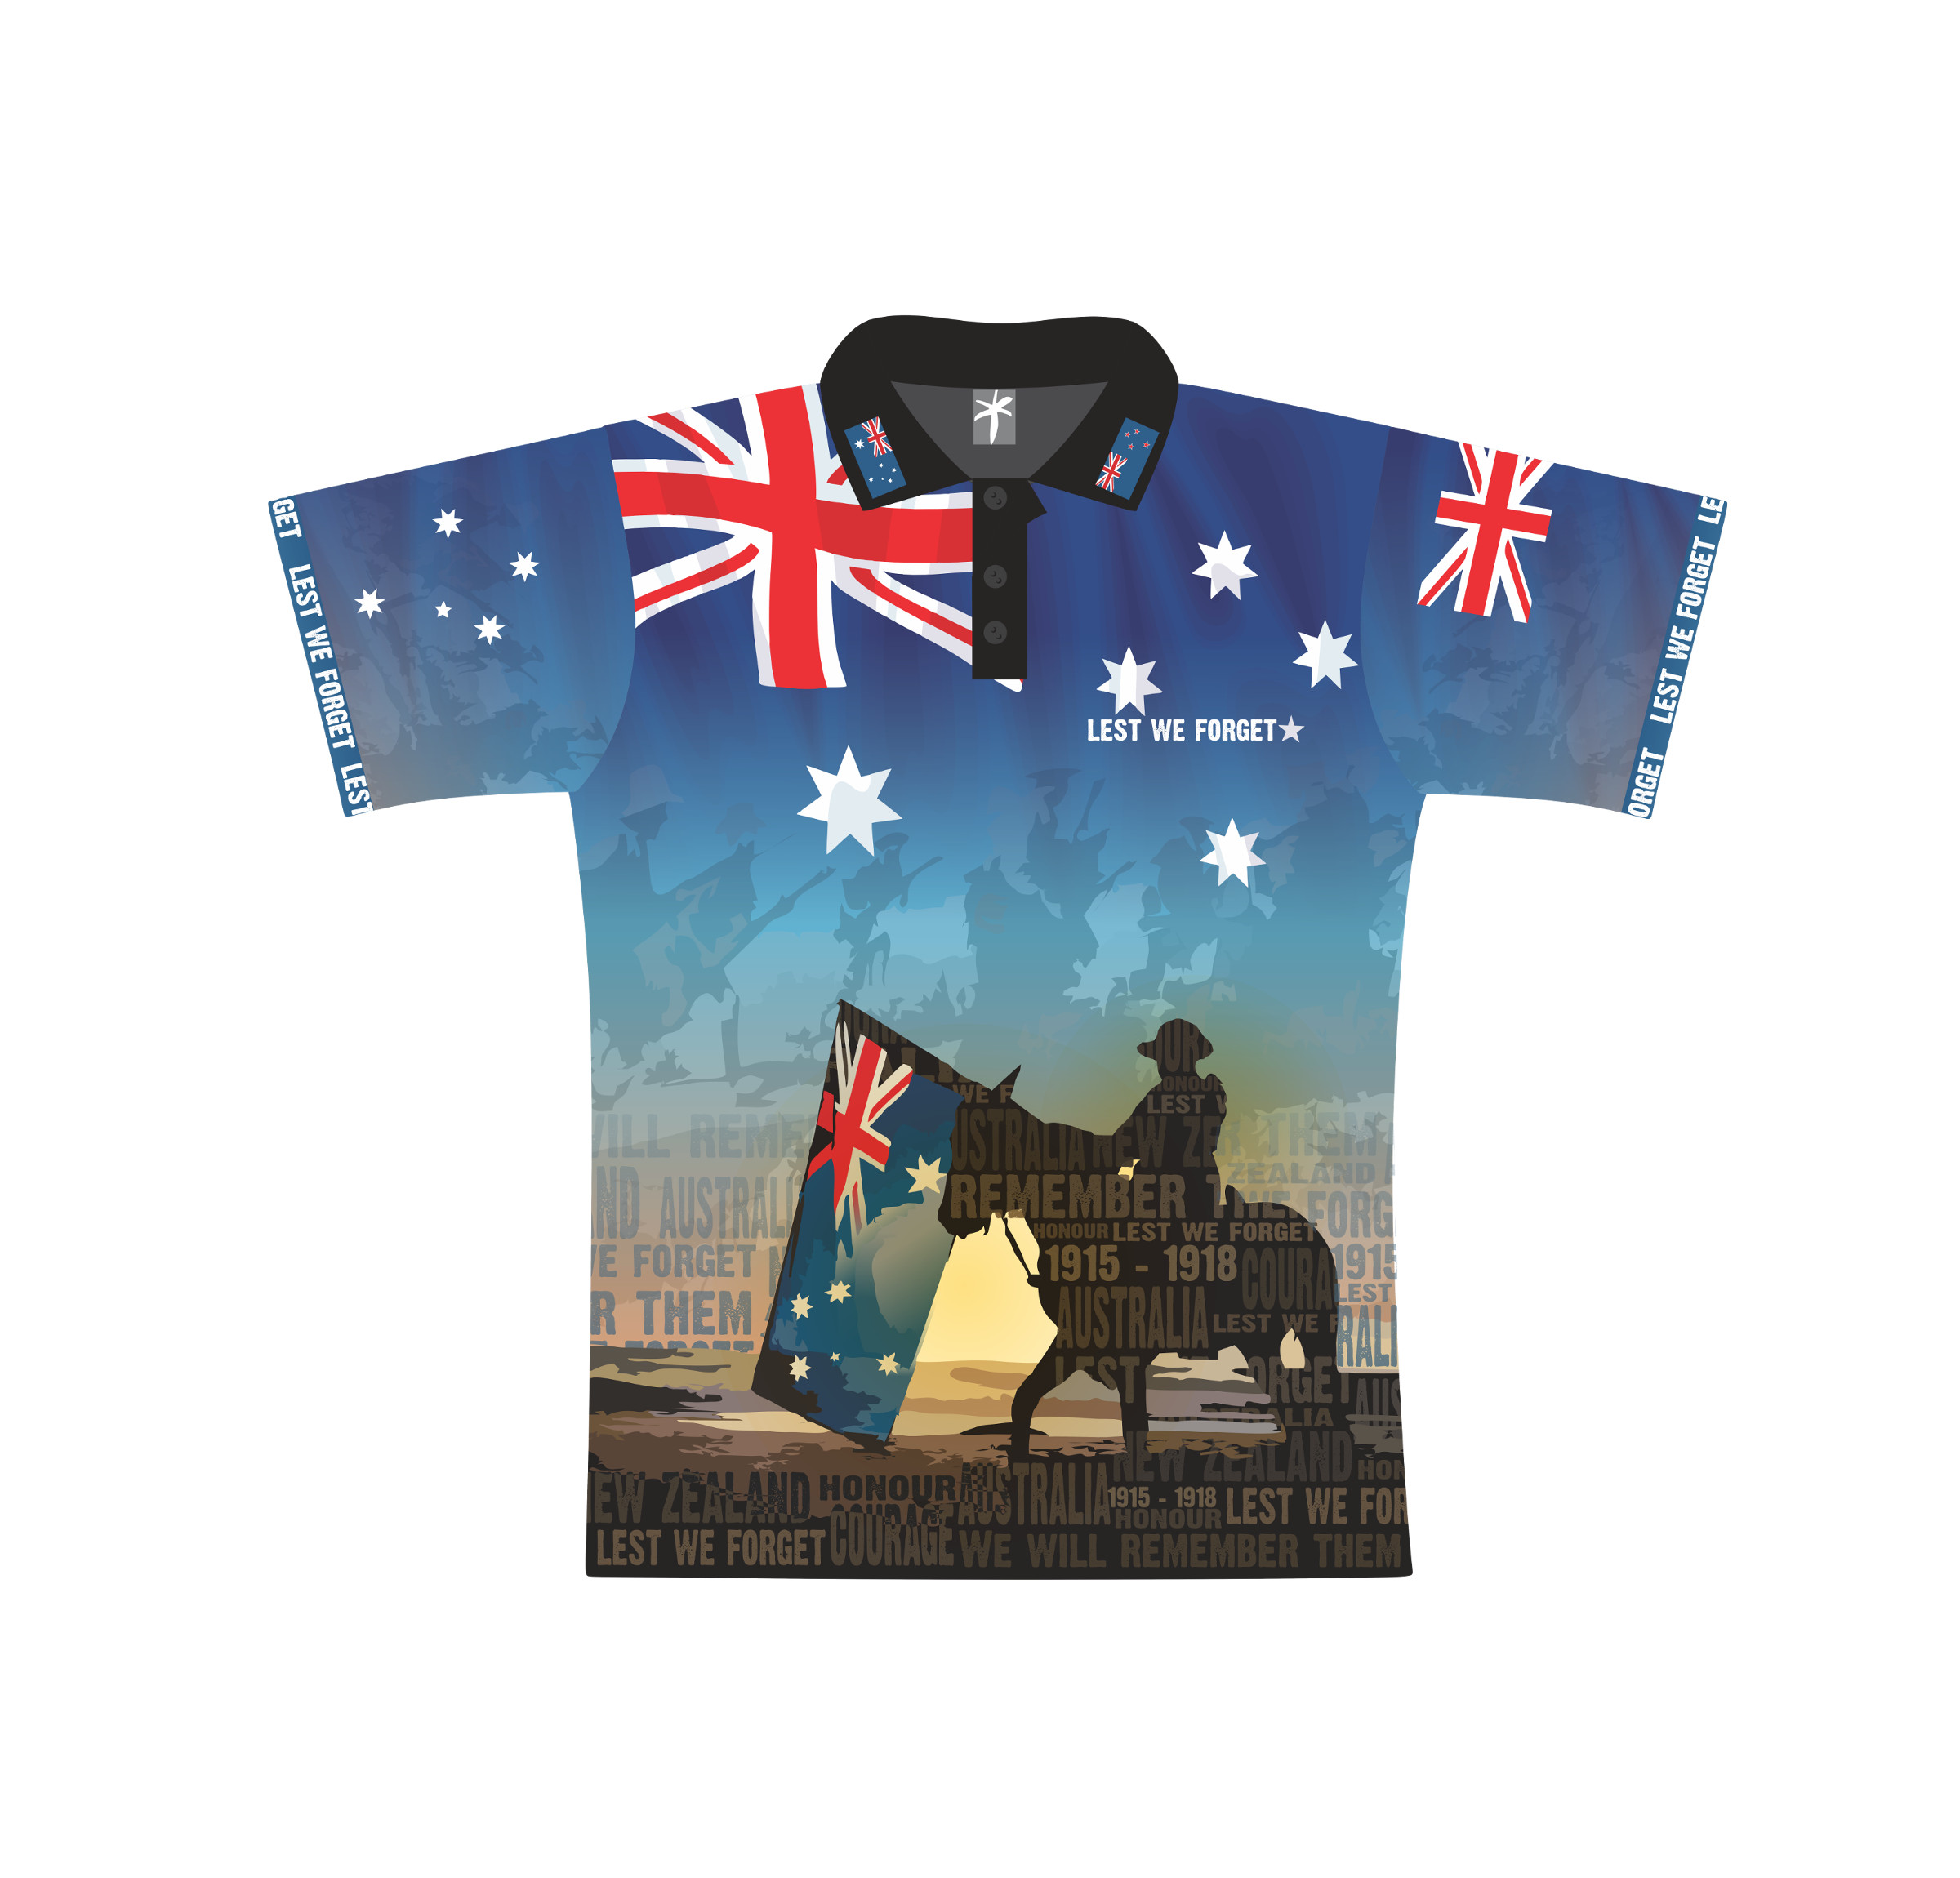 2017 poppy wreath commemorative shirt amazing shirts for T shirt printing website